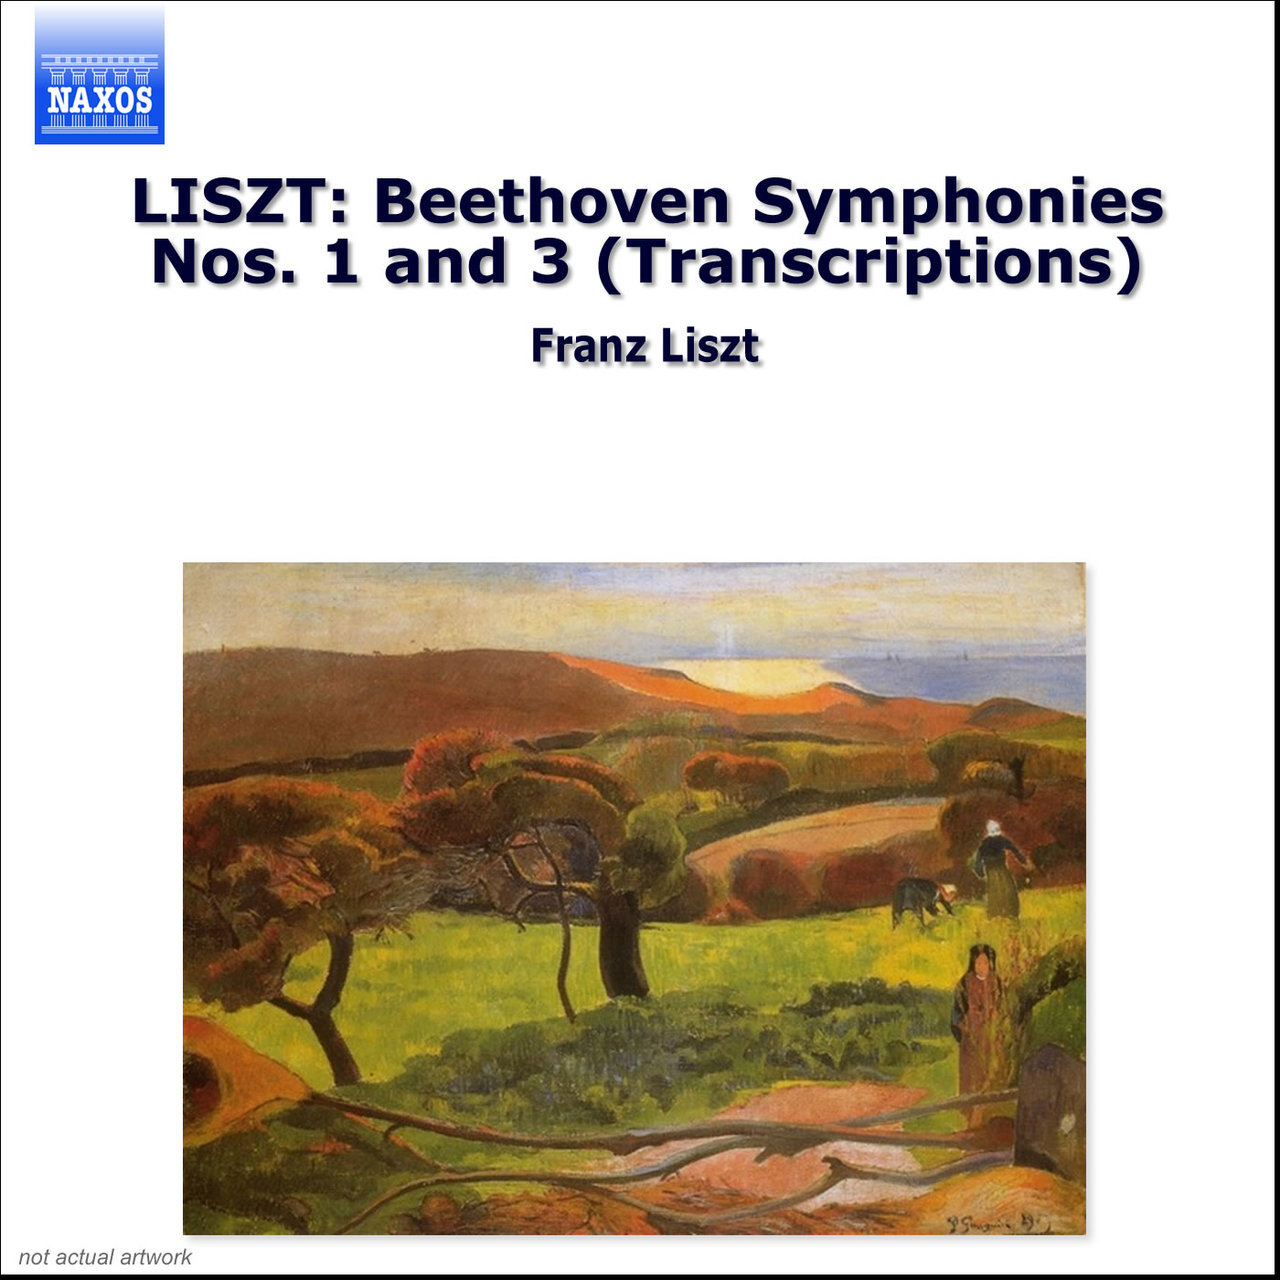 Liszt: Beethoven Symphonies Nos. 1 and 3 (Transcriptions)